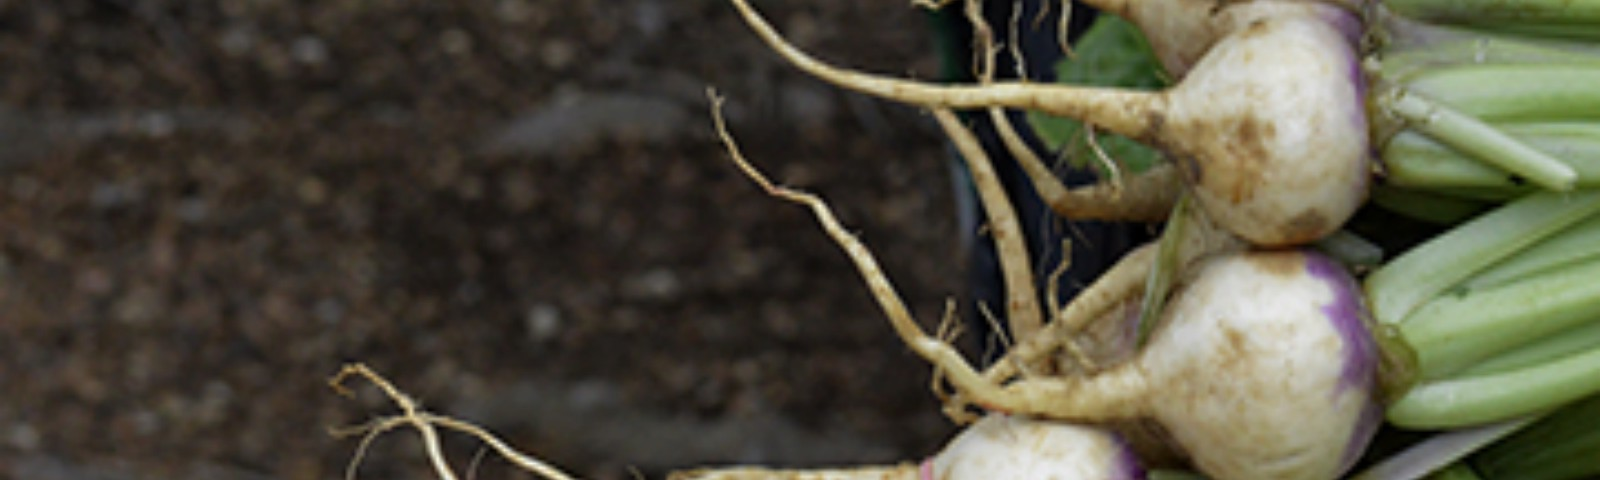 Bunches of turnips tied with large rubber bands. Muddy ground in background.